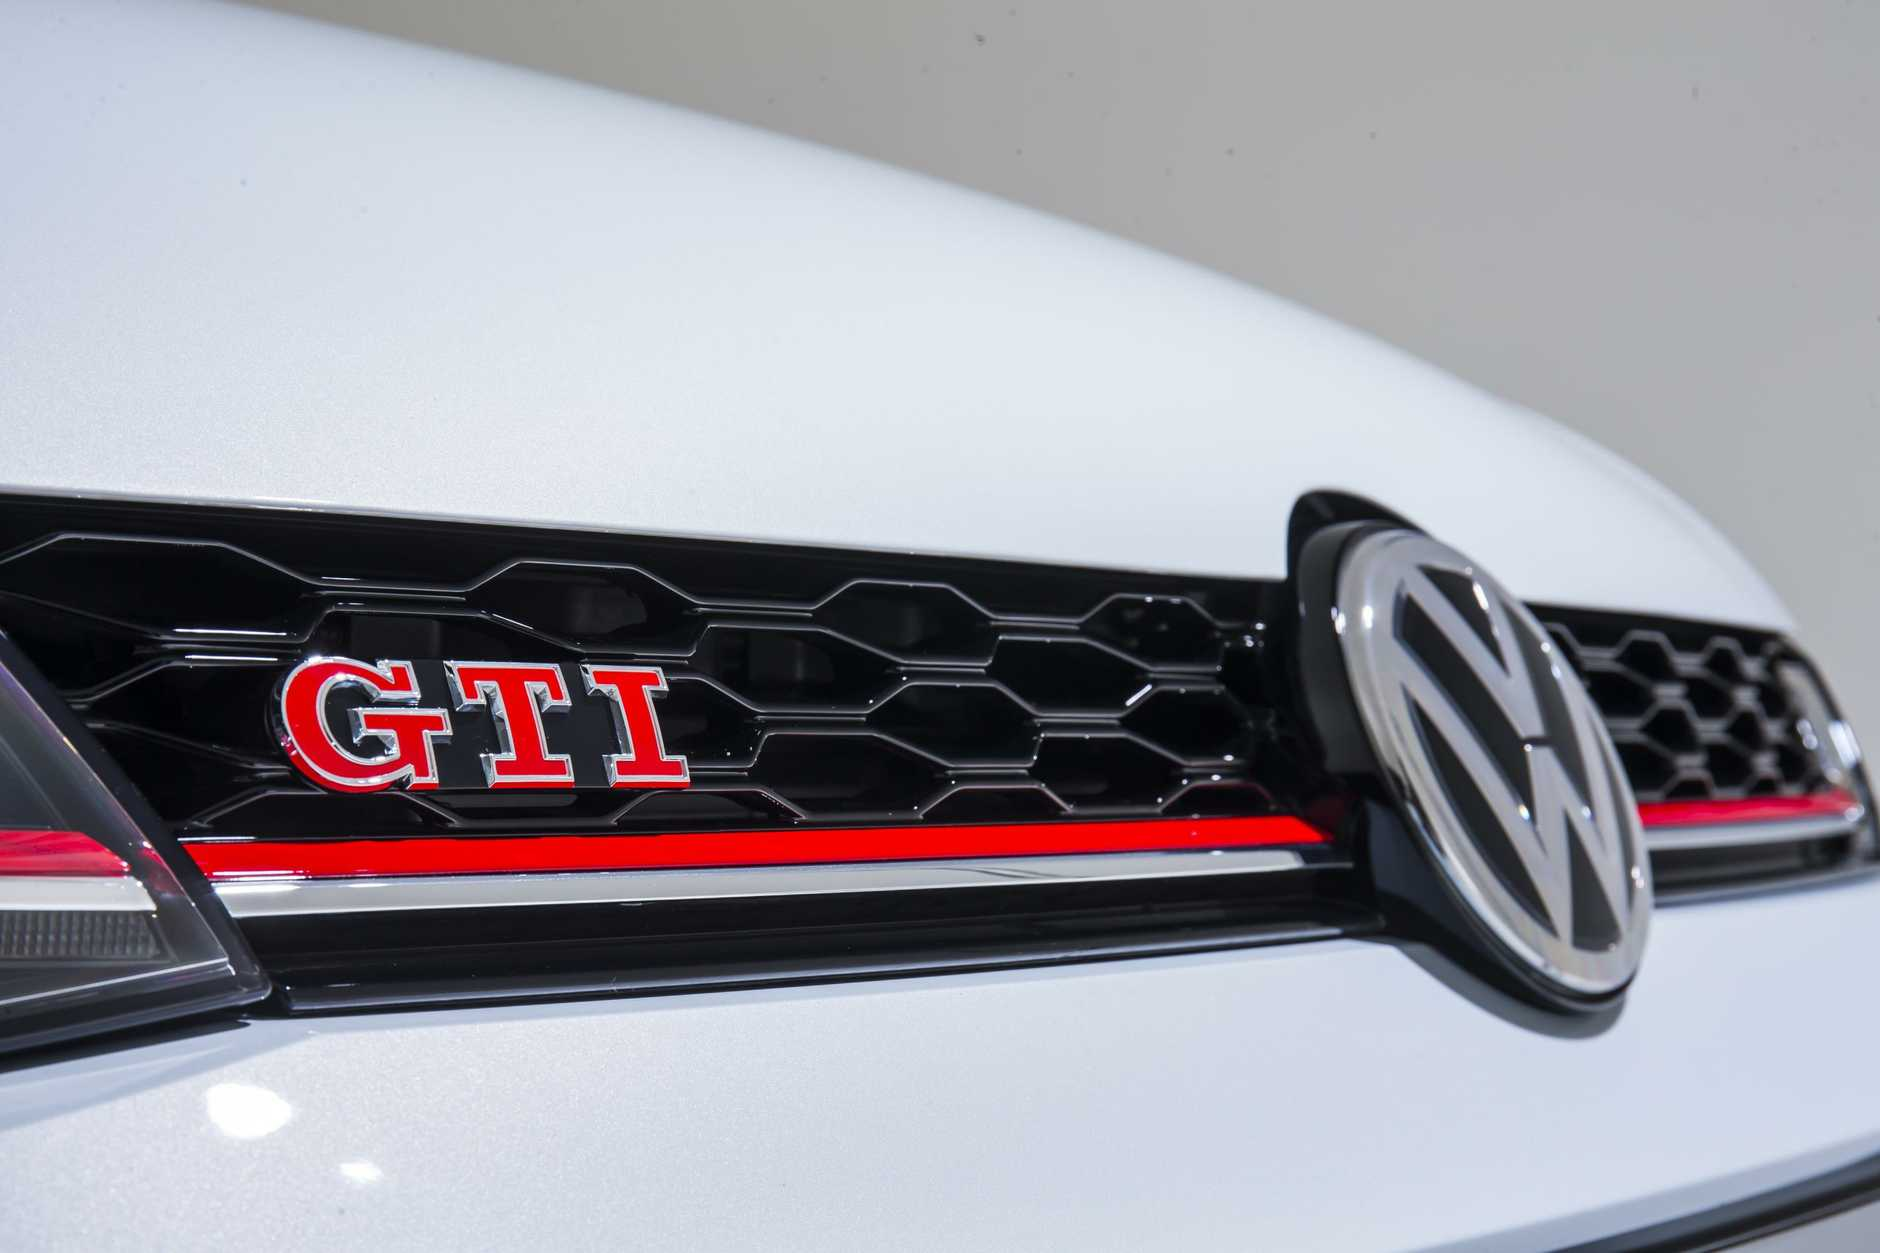 The the 2017 Volkswagen Golf GTI.